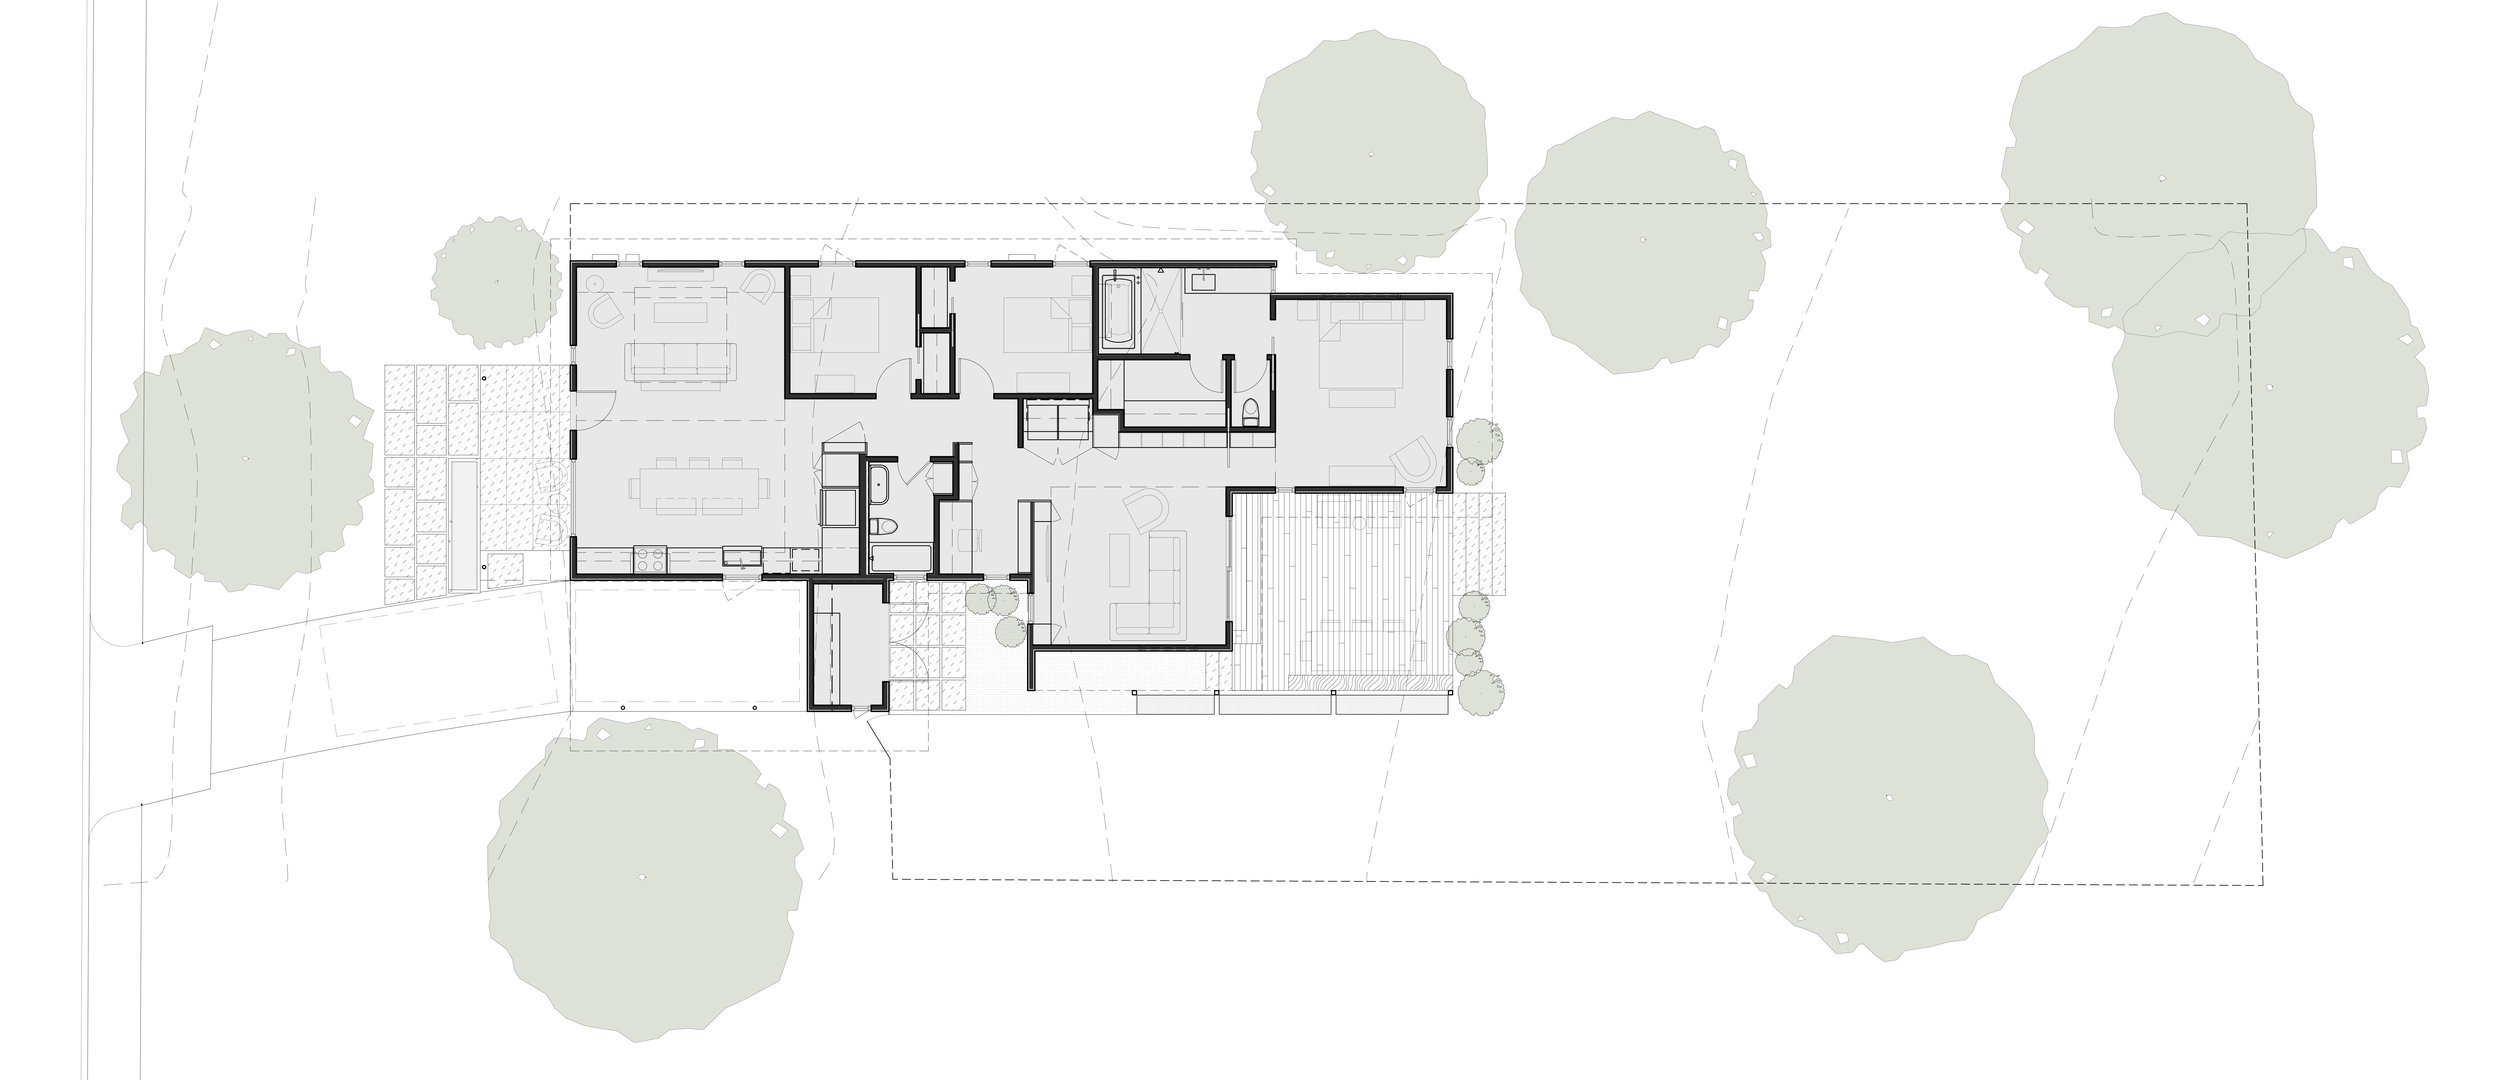 East Austin Bungalow Floor Plan.jpg